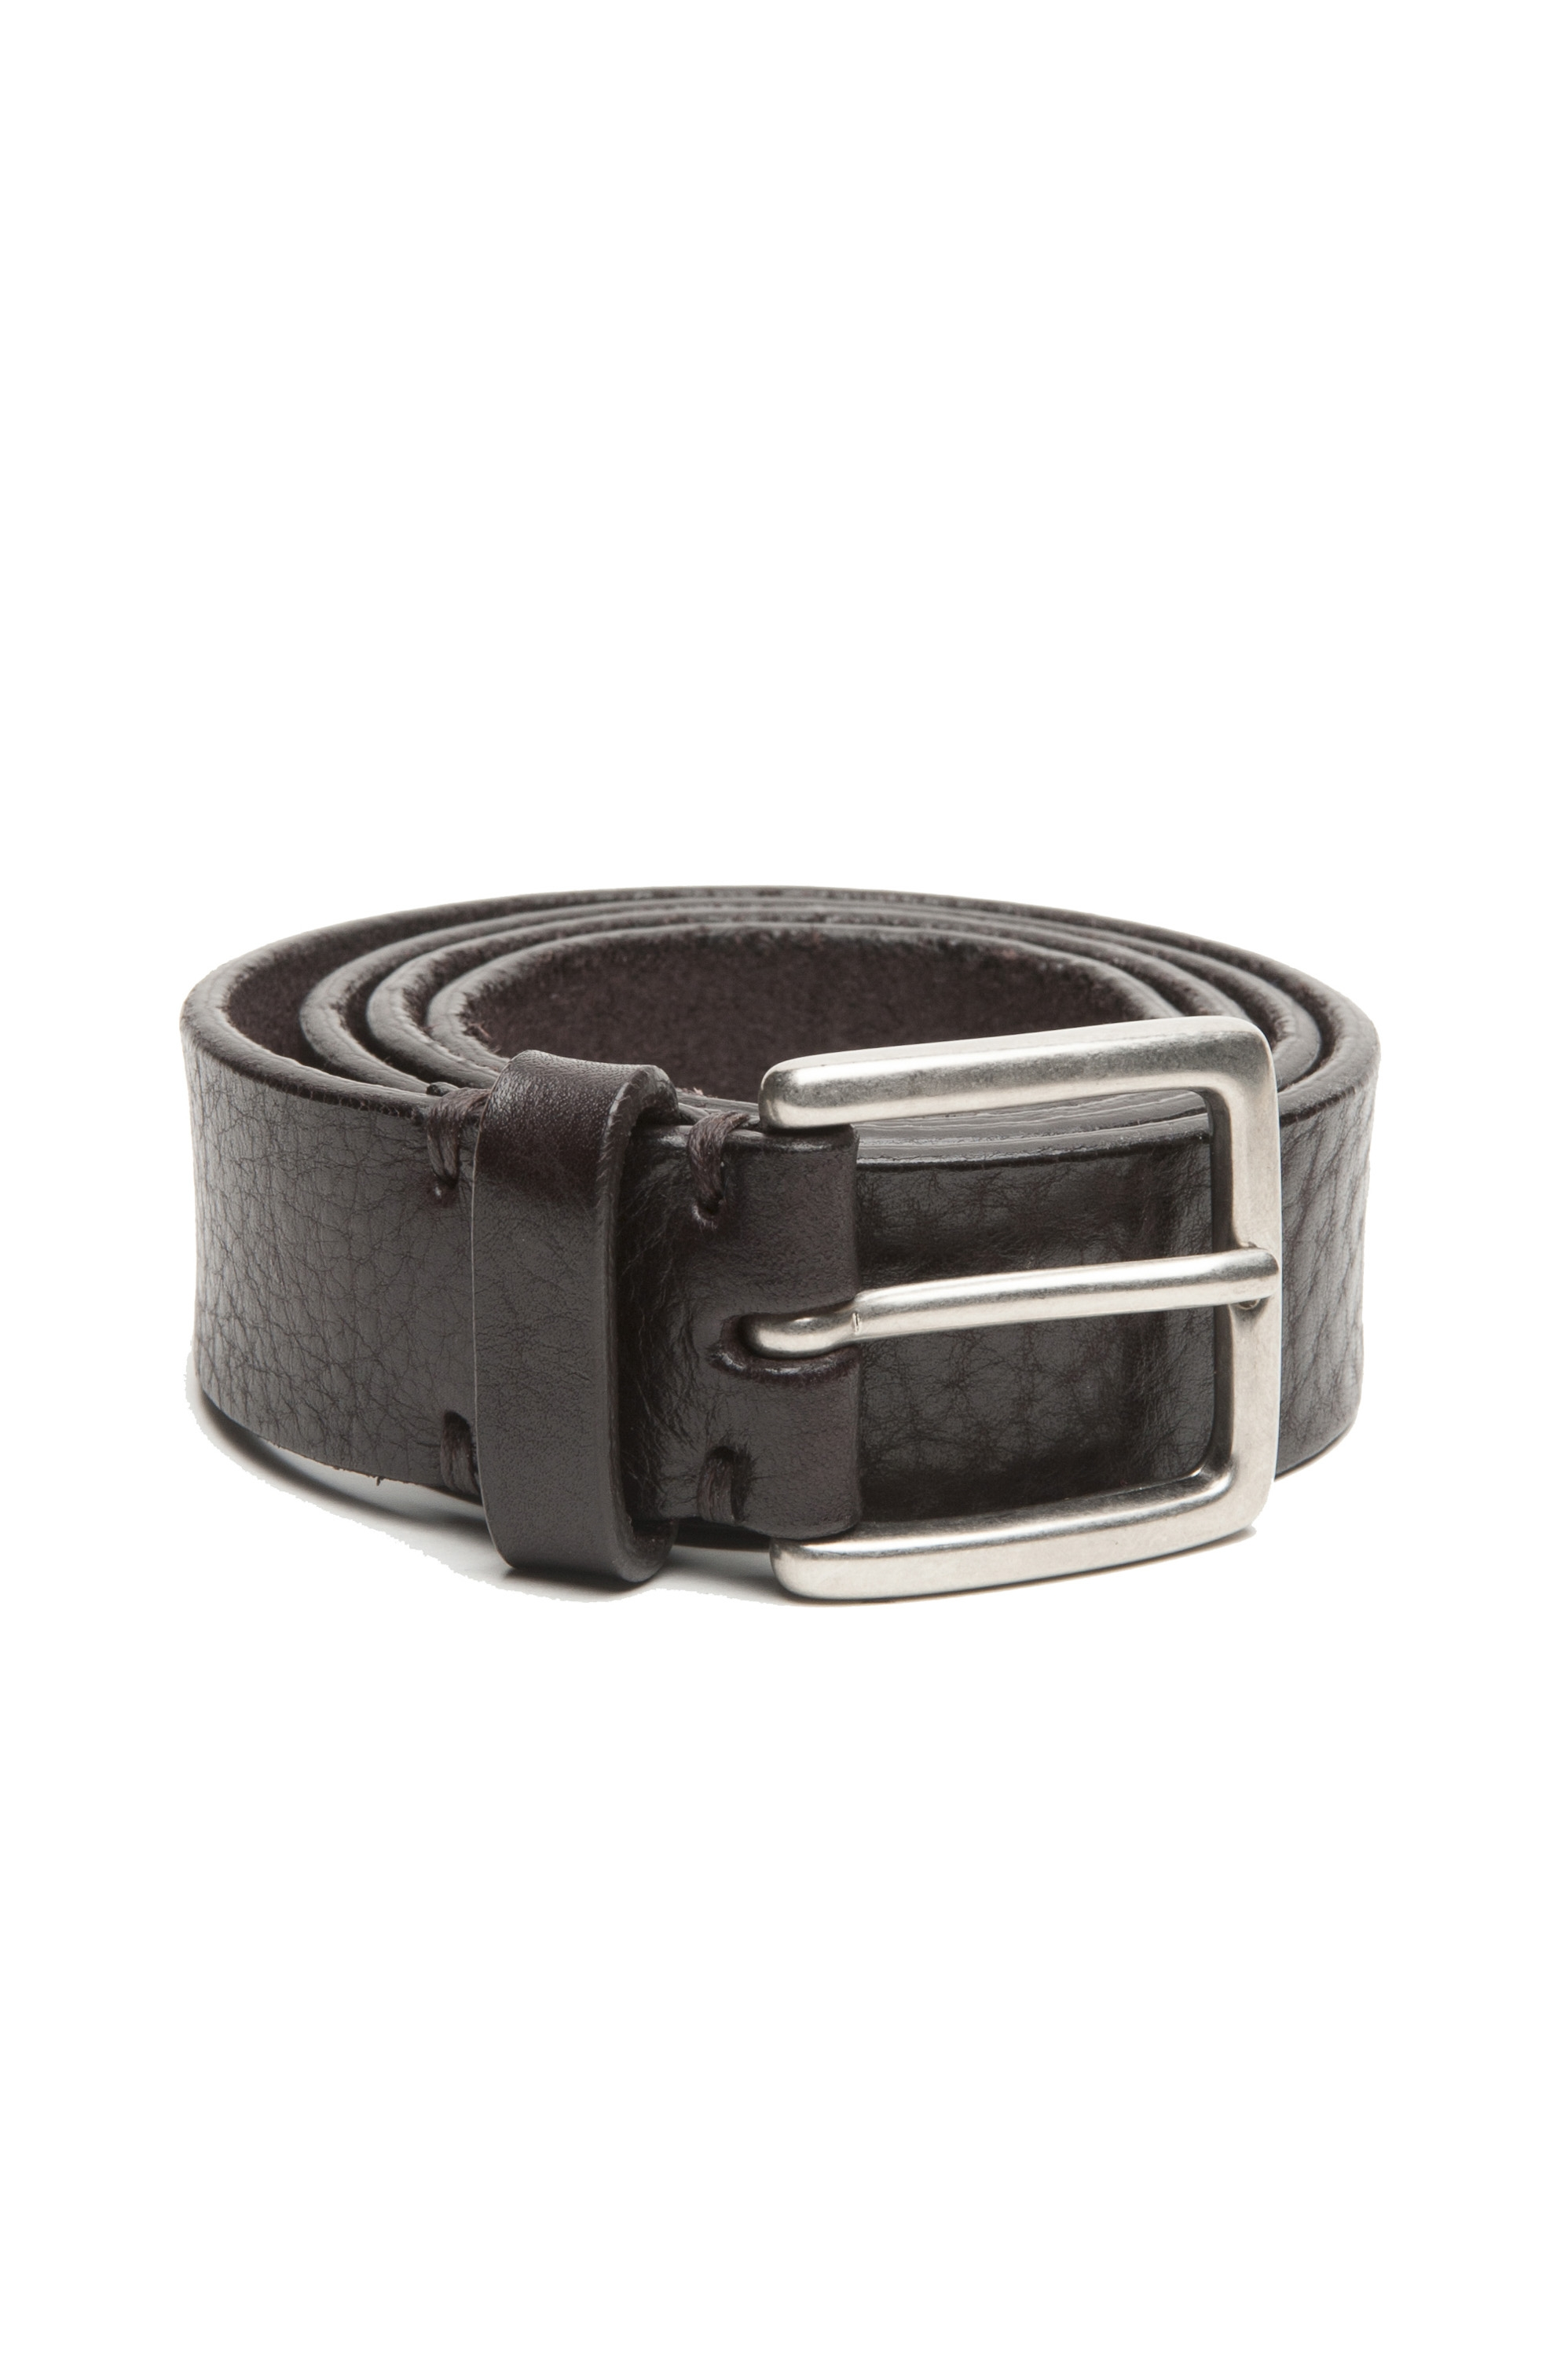 SBU 03029_2020AW Brown bullhide tumbled leather belt 1.2 inches 01